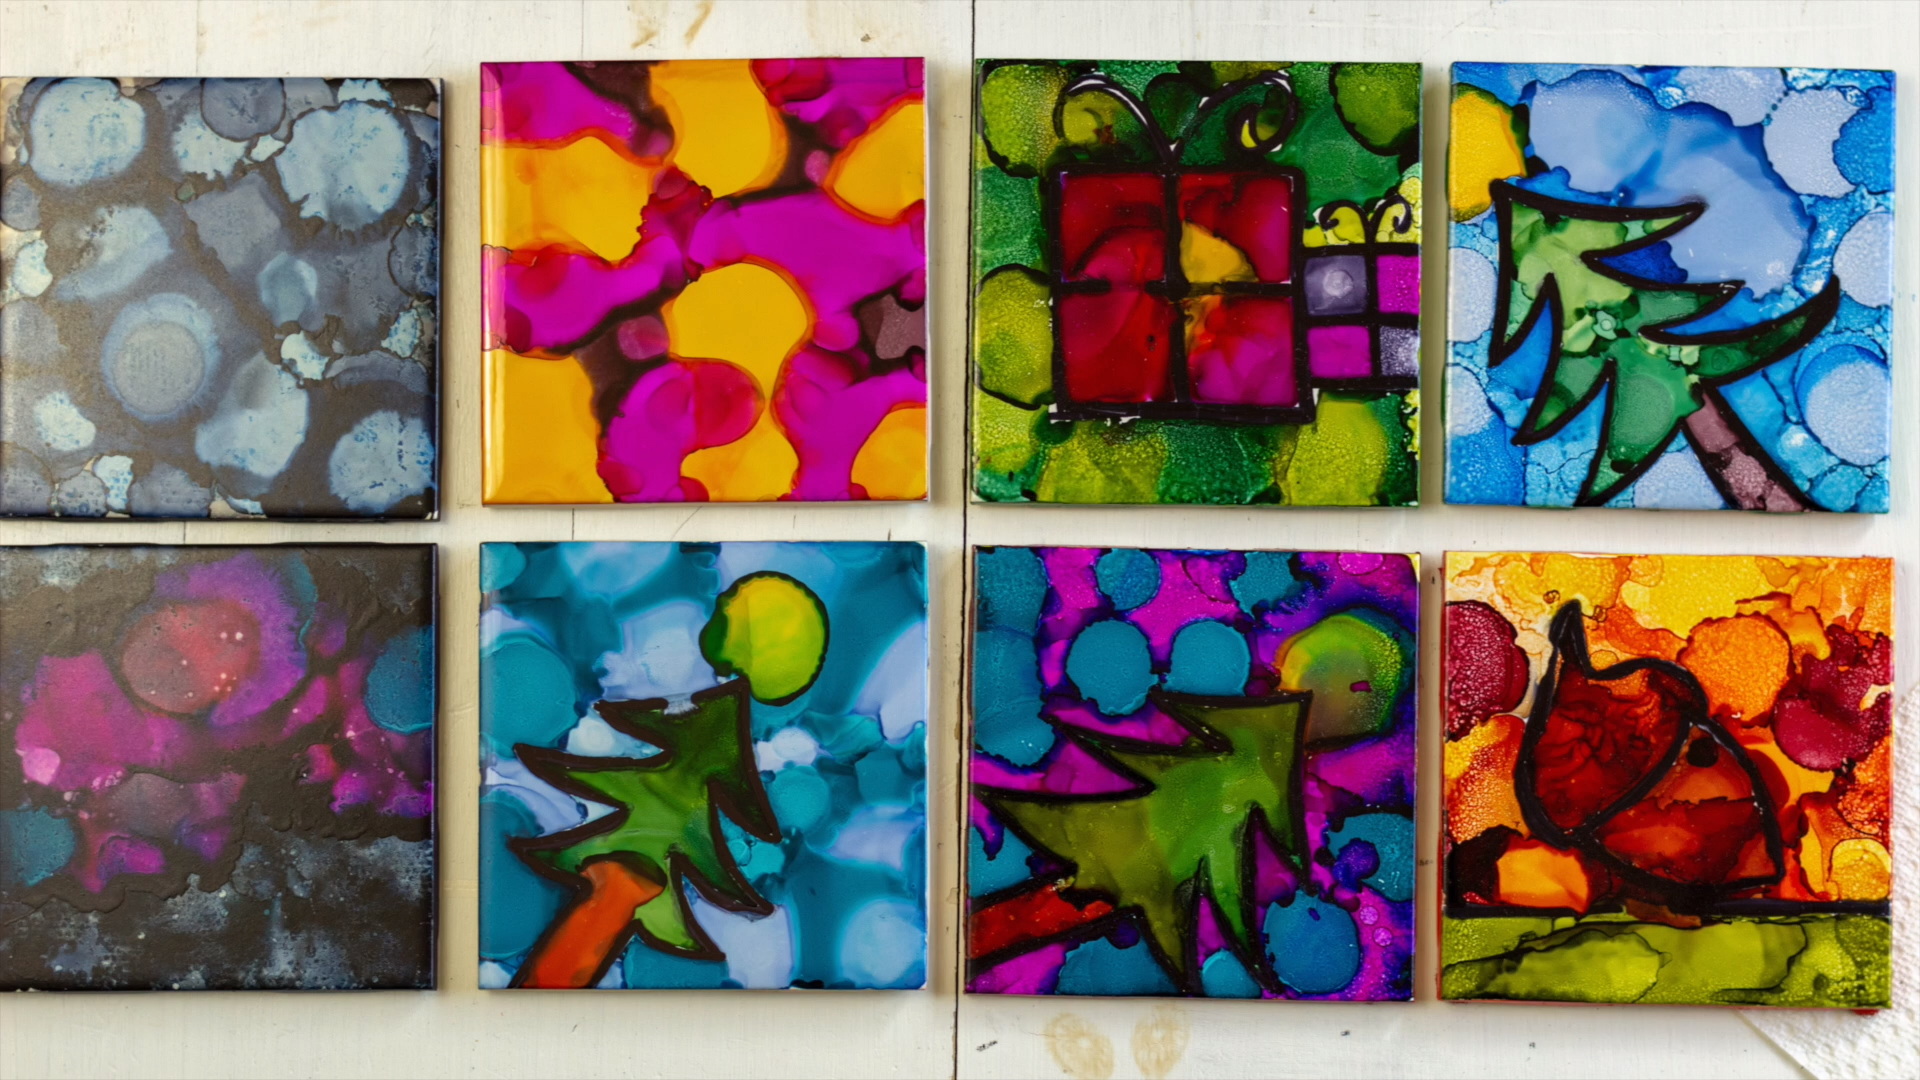 DIY Alcohol Ink Art Tiles #alcoholinkcrafts